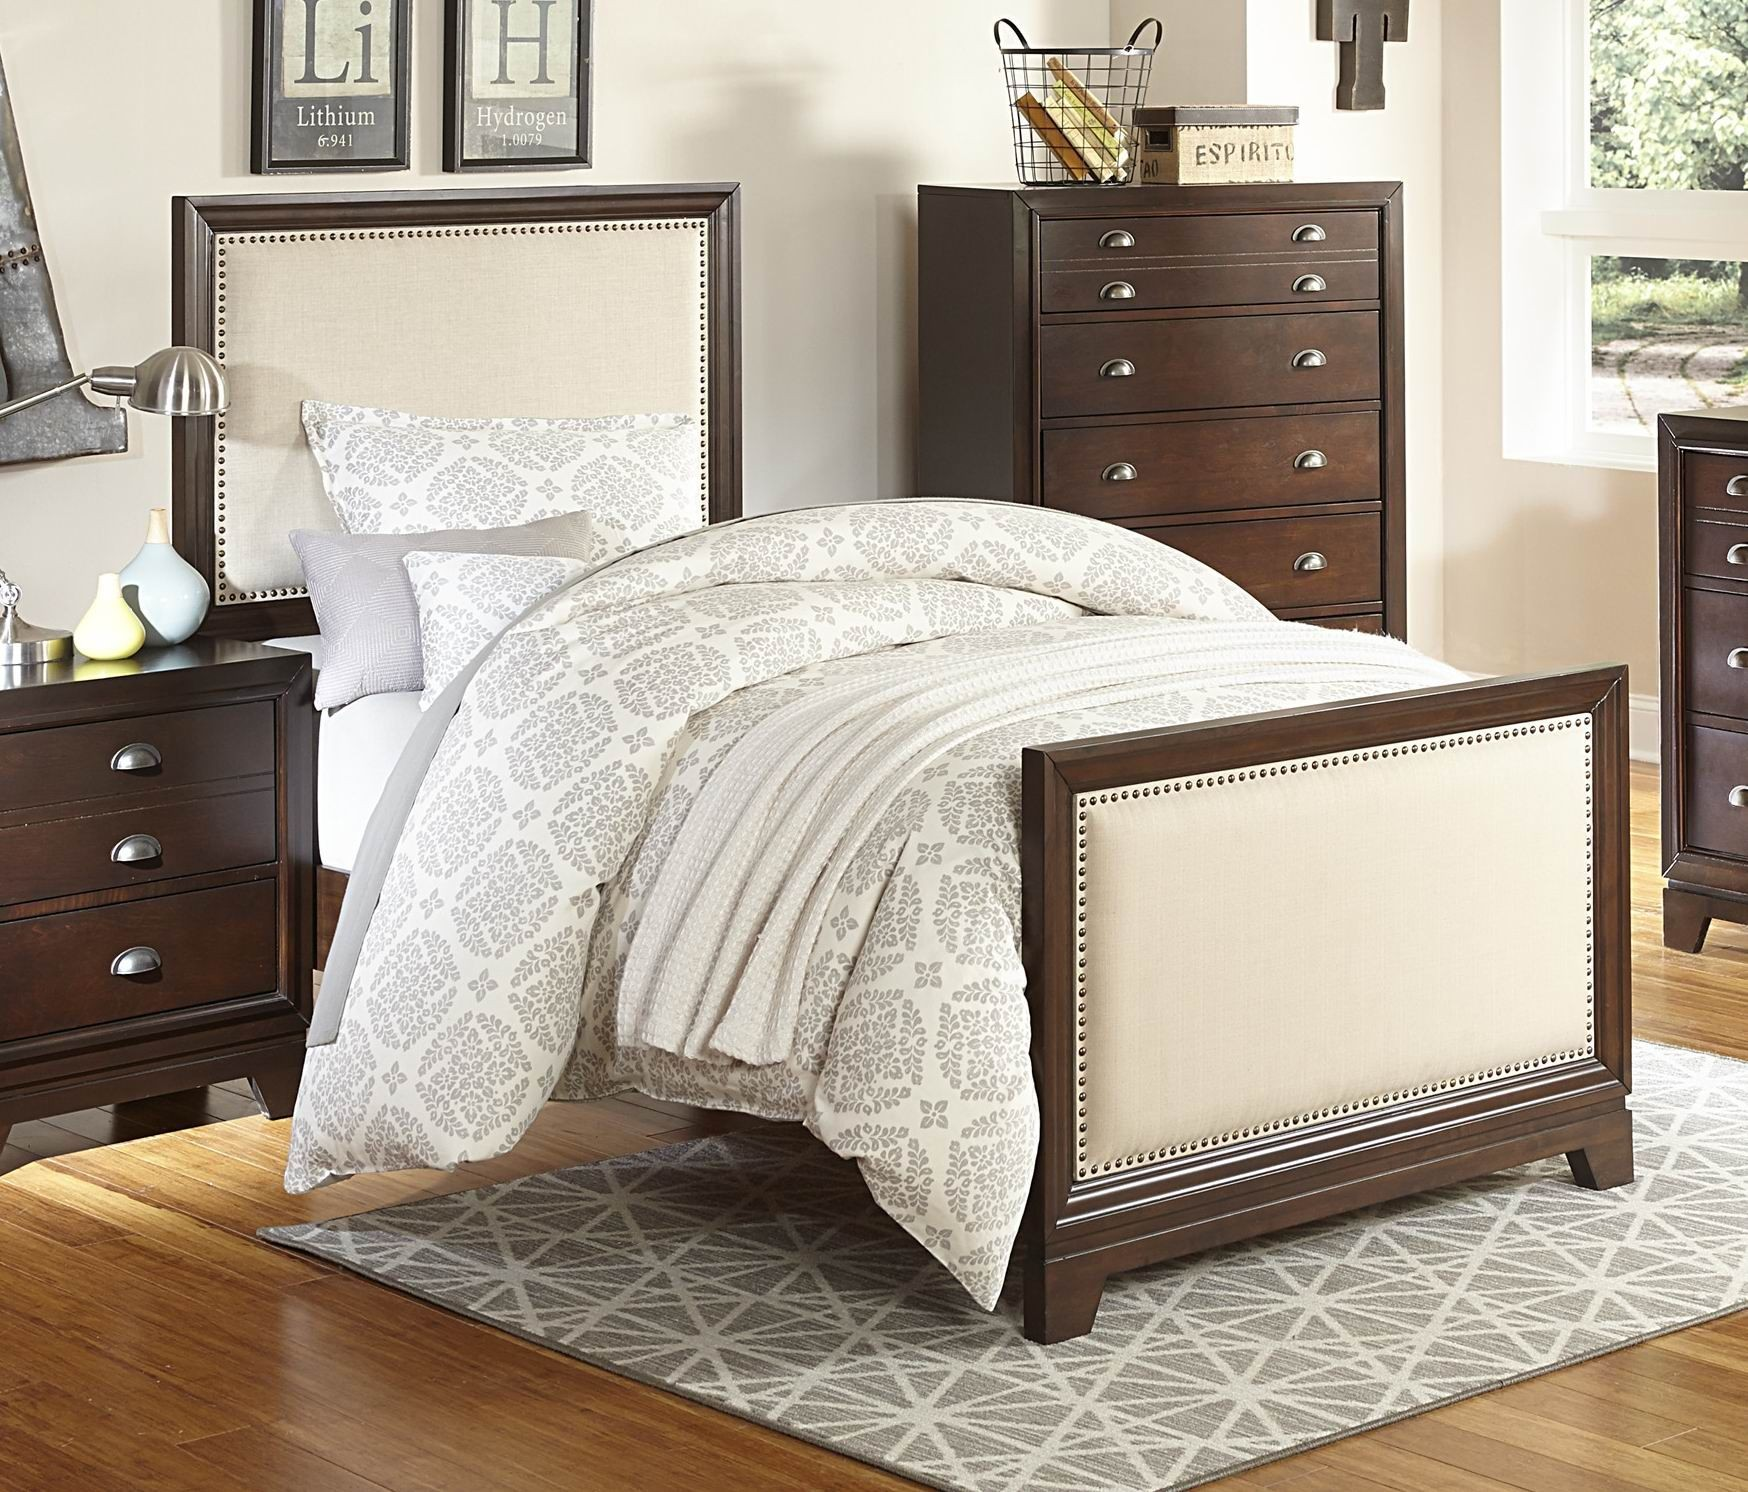 Bernal Heights Warm Cherry Full Panel Bed From Homelegance